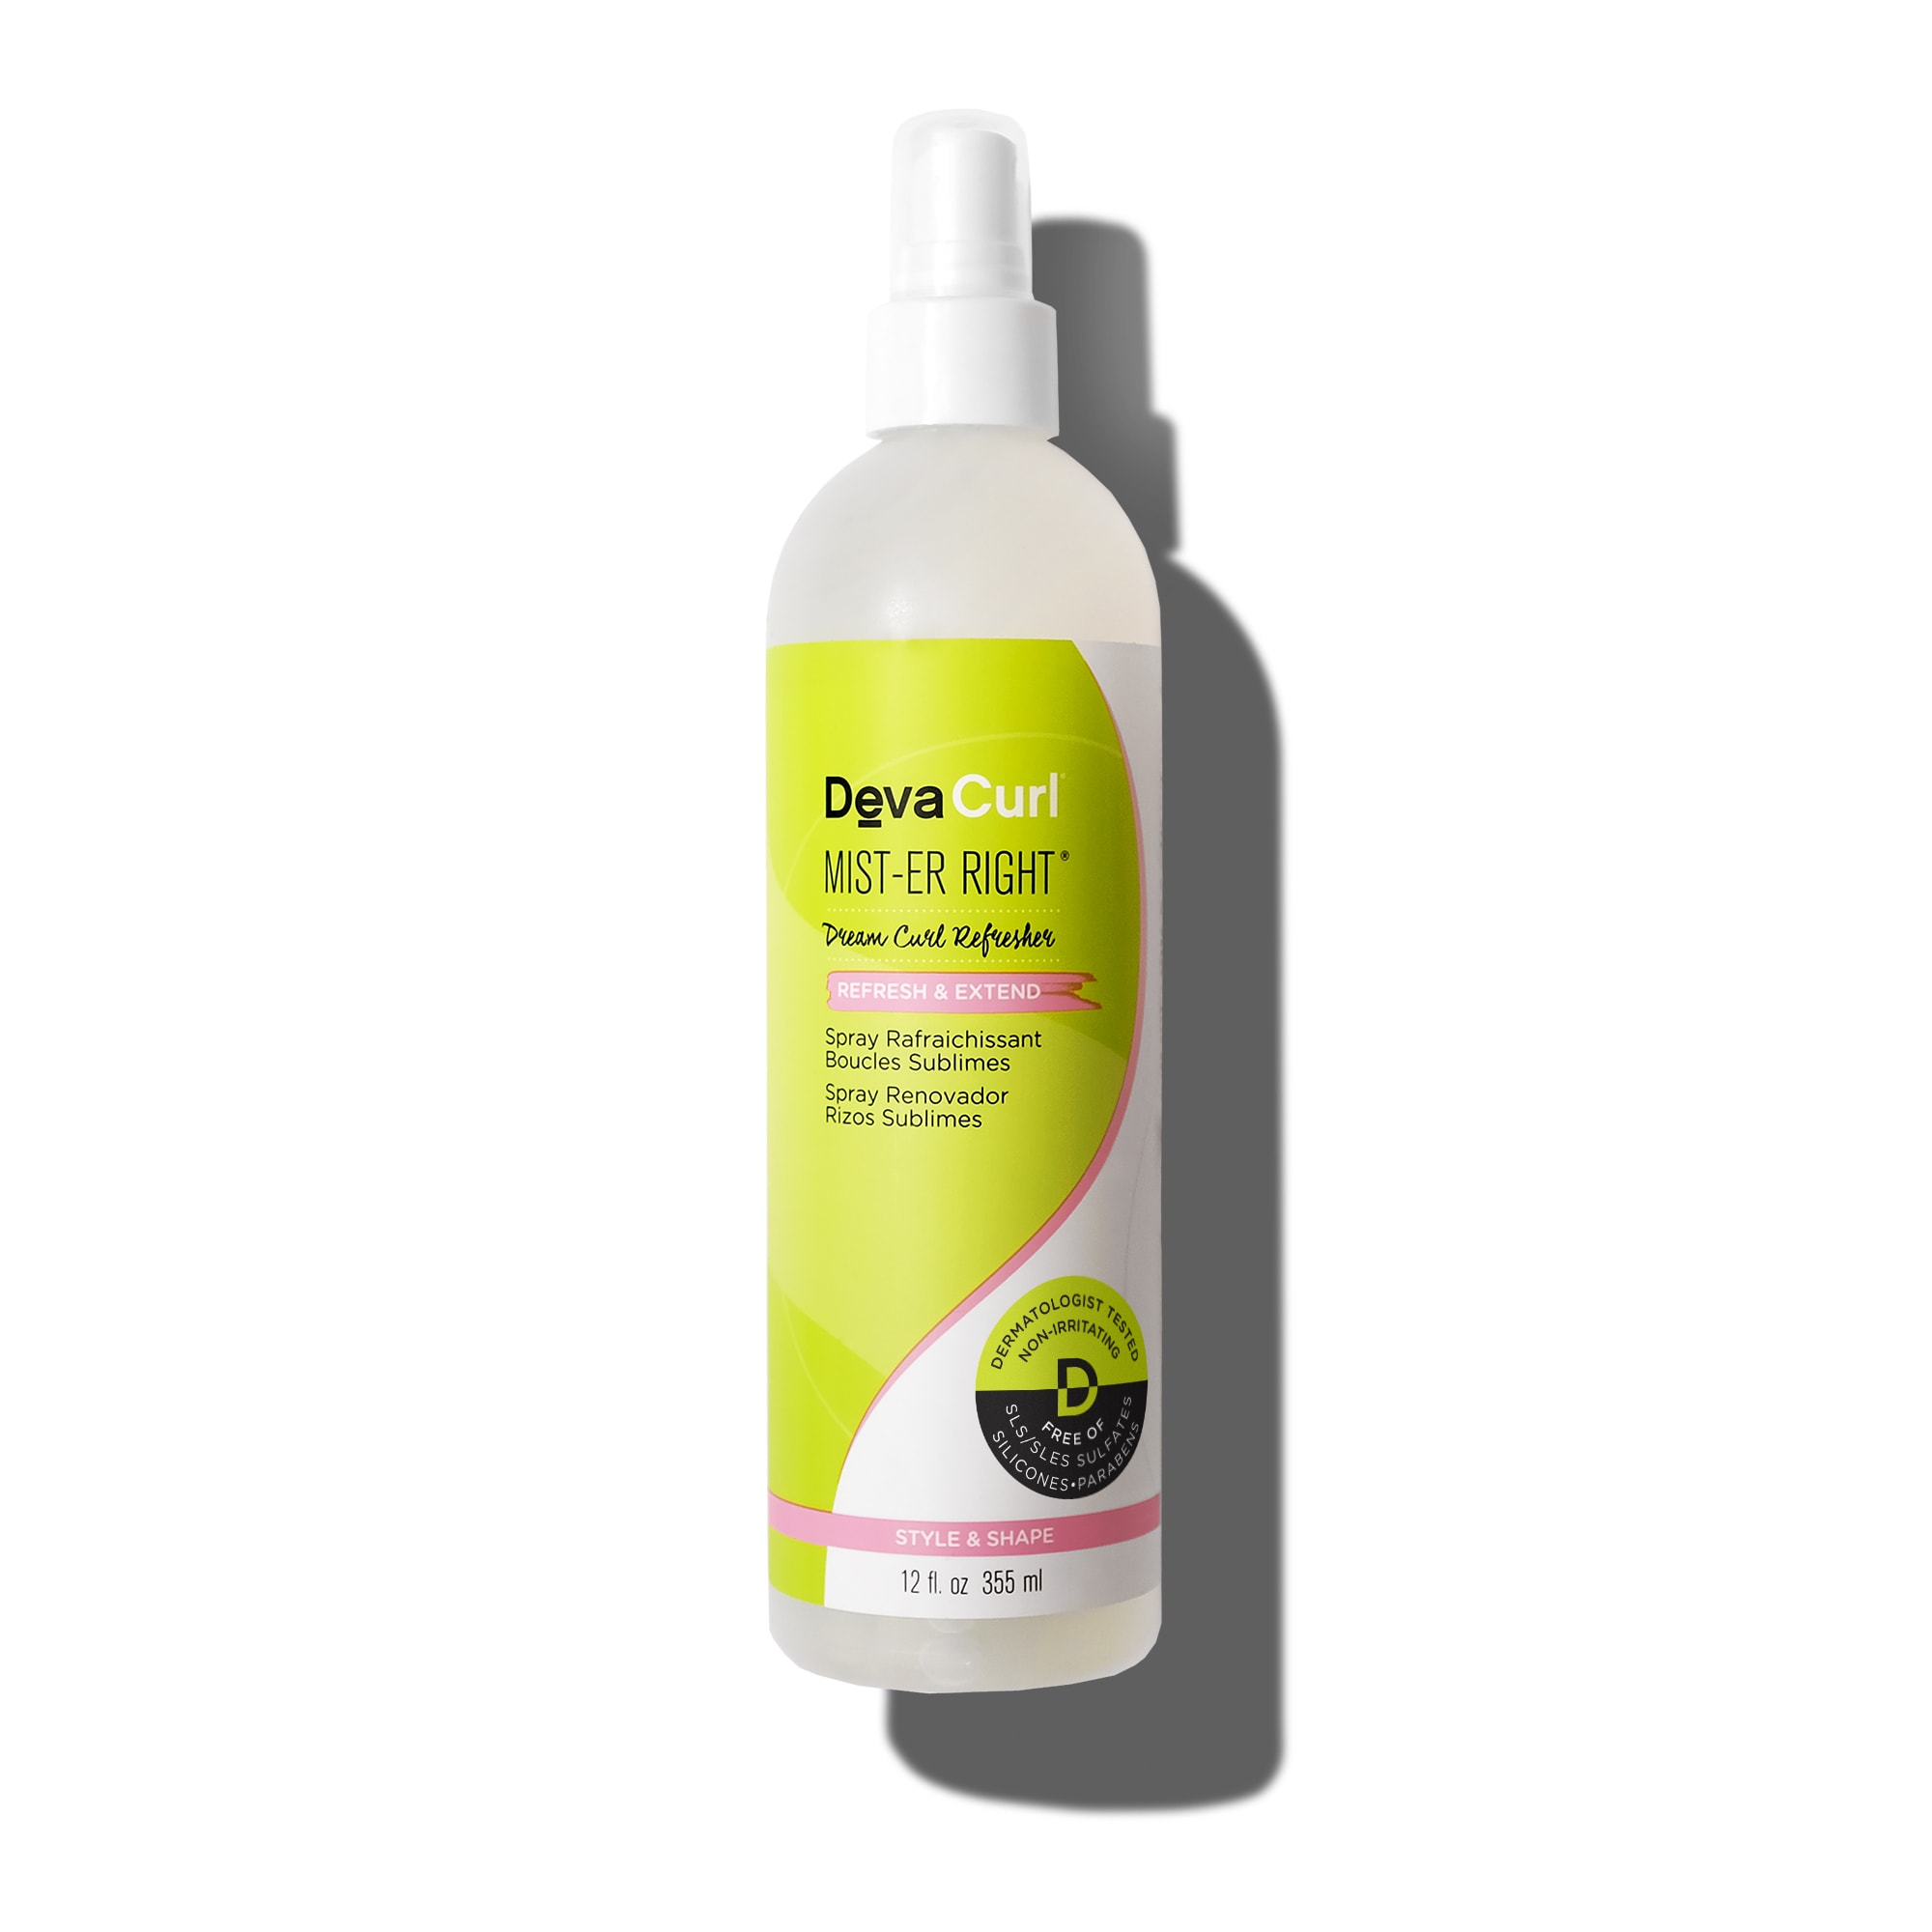 mist-er right 12oz spray bottle